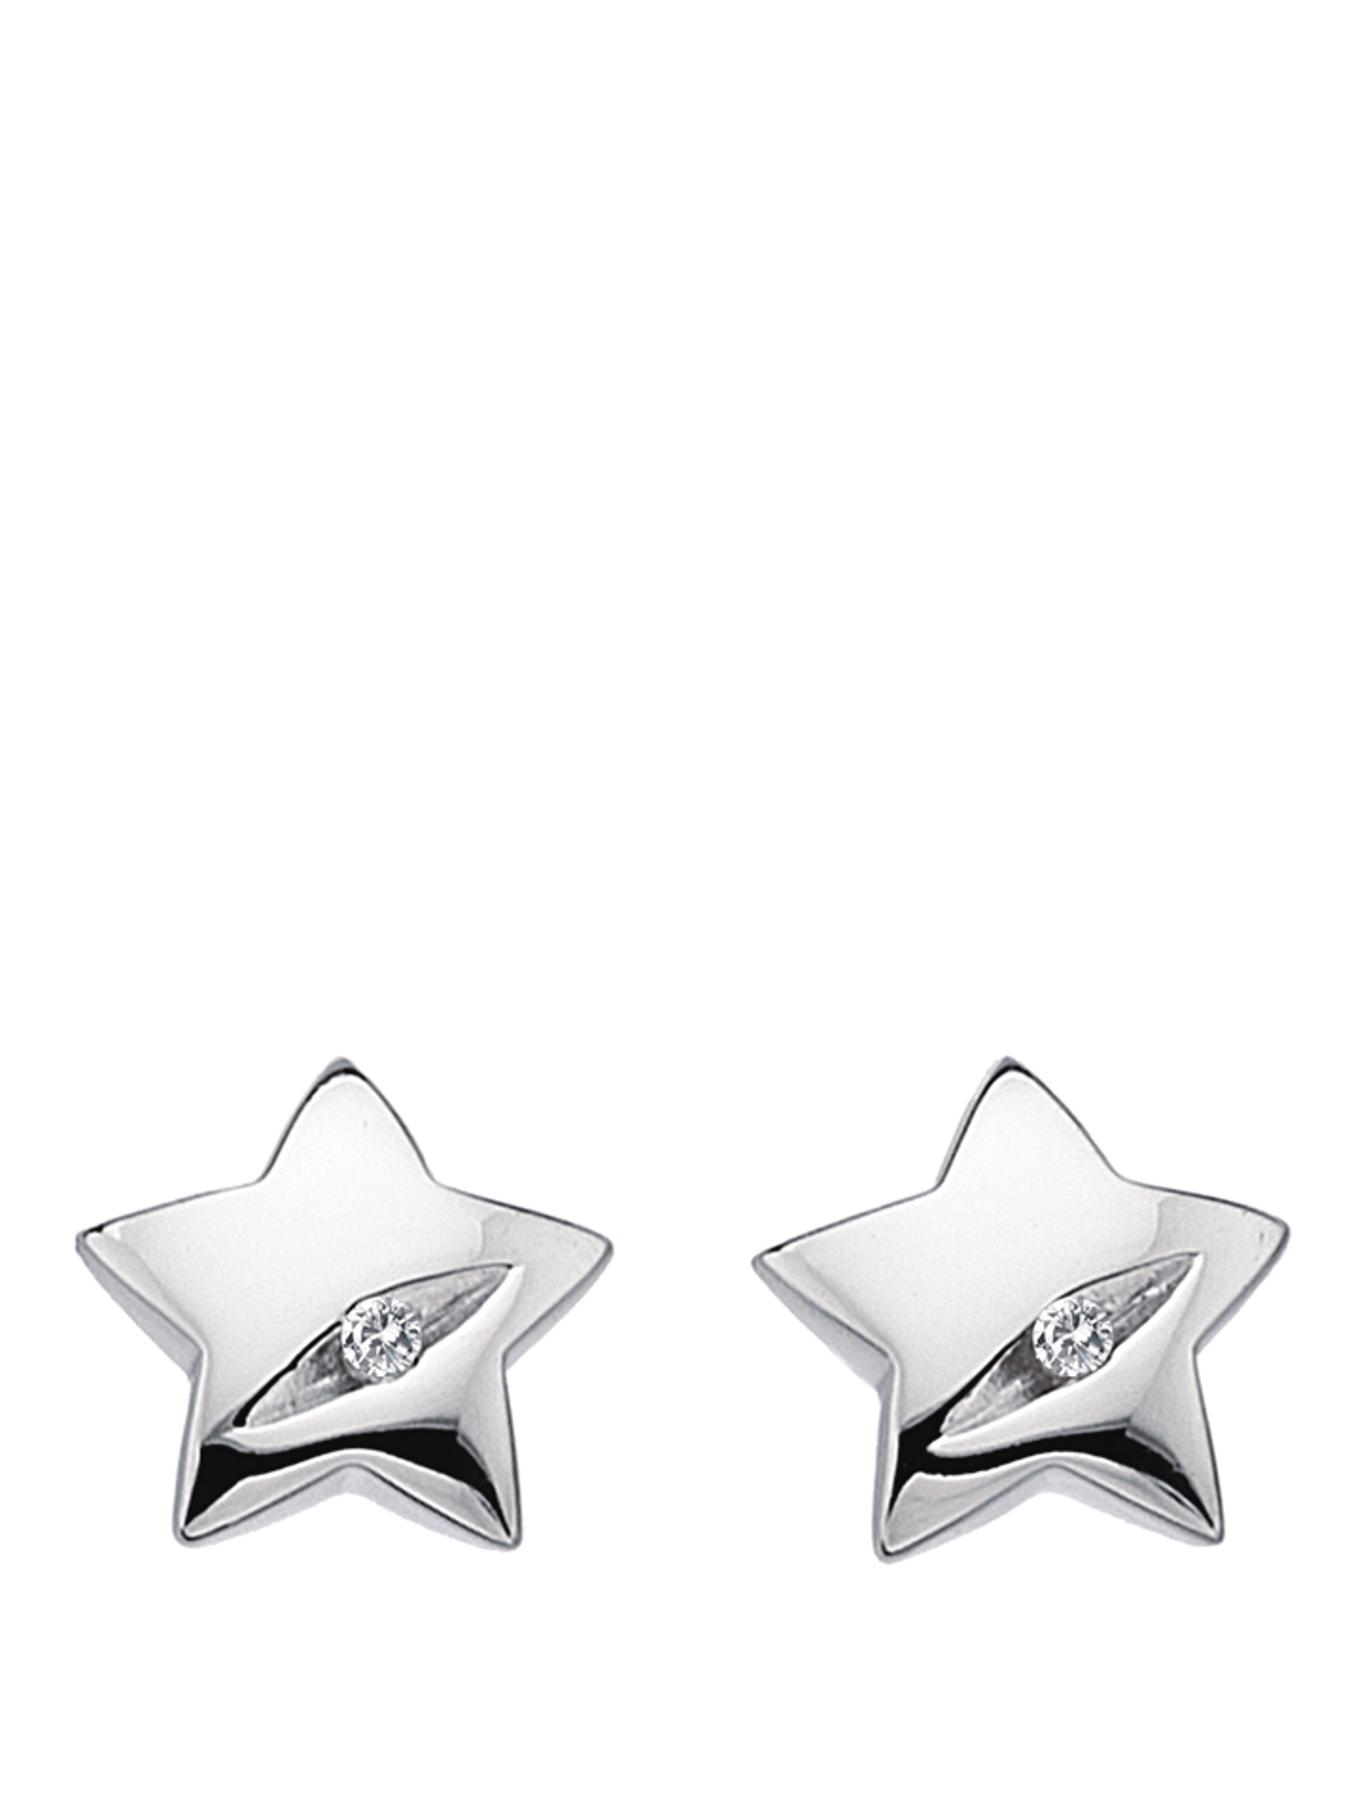 Shooting Star Sterling Silver and Diamond Star Earrings